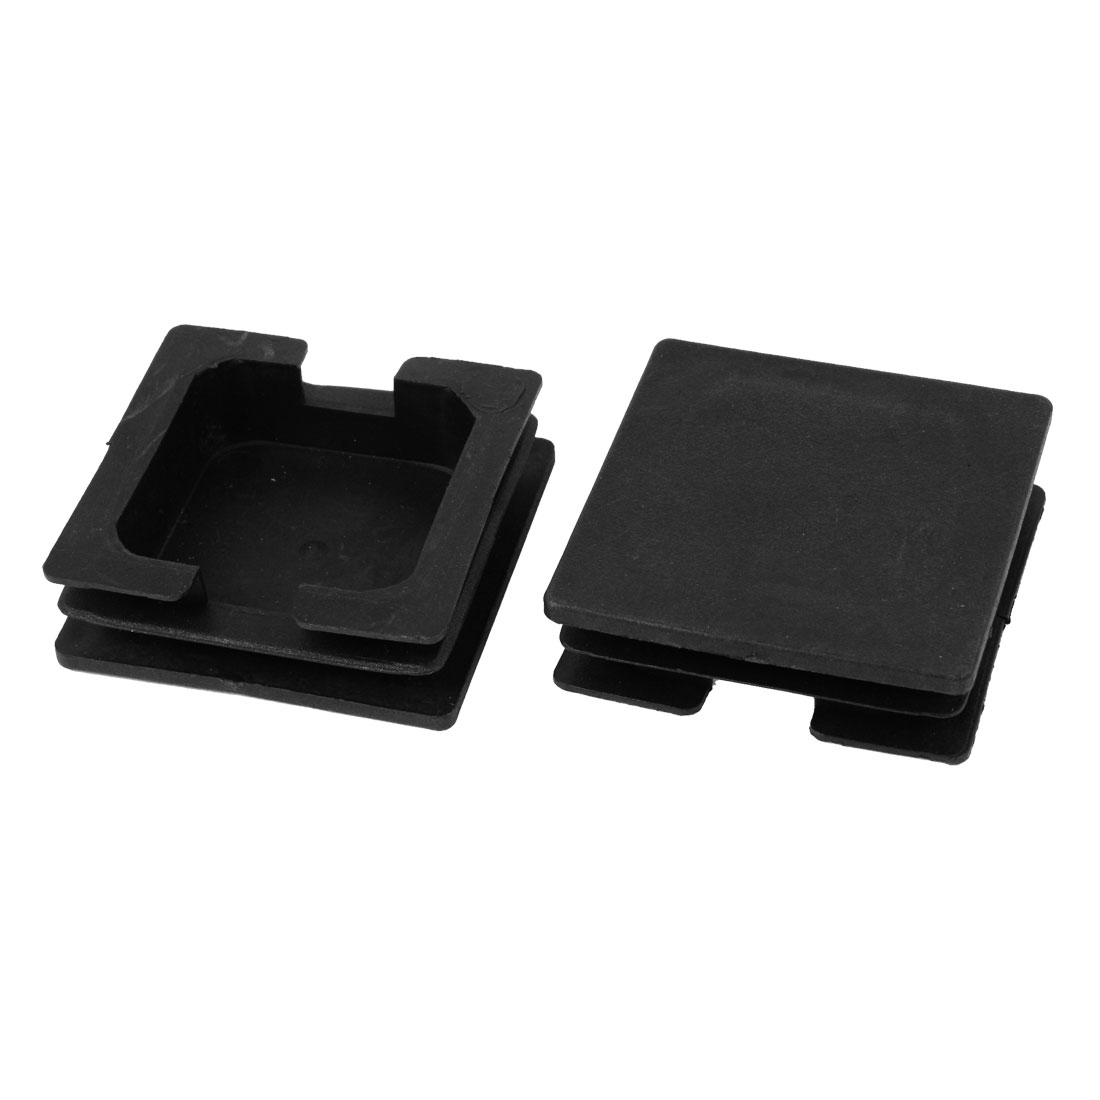 2 Pieces Black Plastic Square Blanking End Caps Tubing Tube Inserts 75mm x 75mm